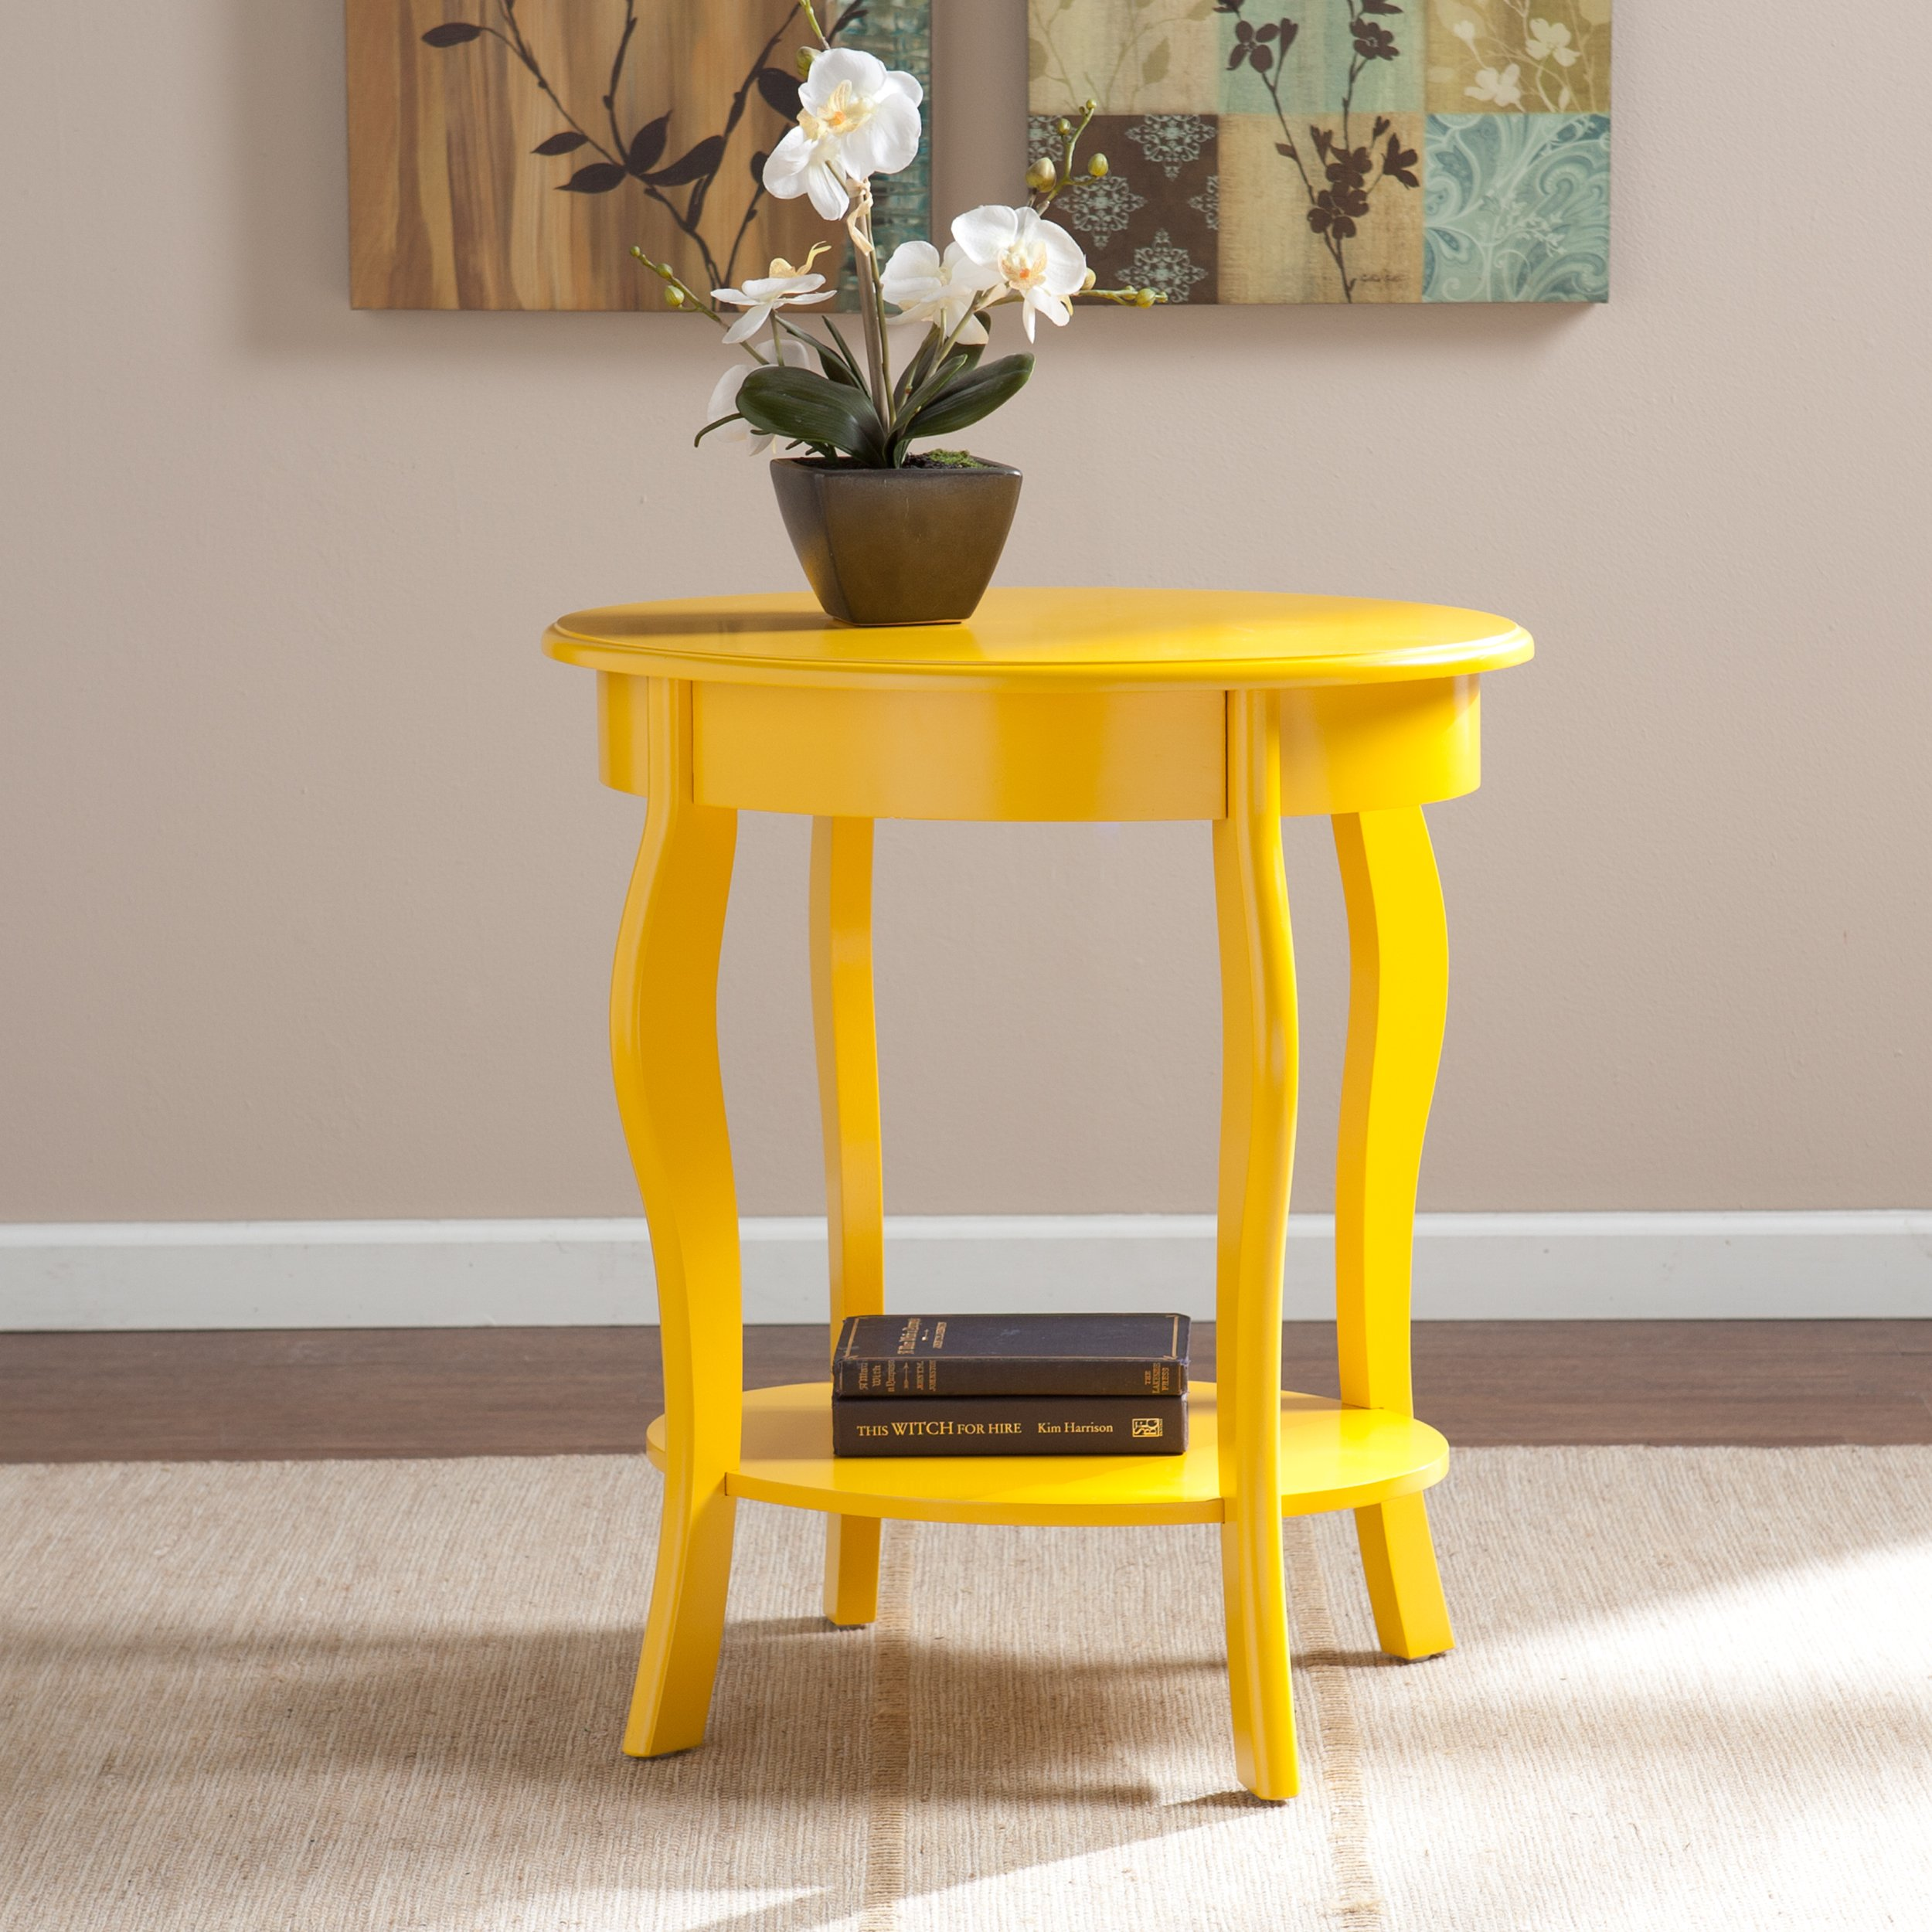 Southern Enterprises Watts Oval Accent Table - Yellow